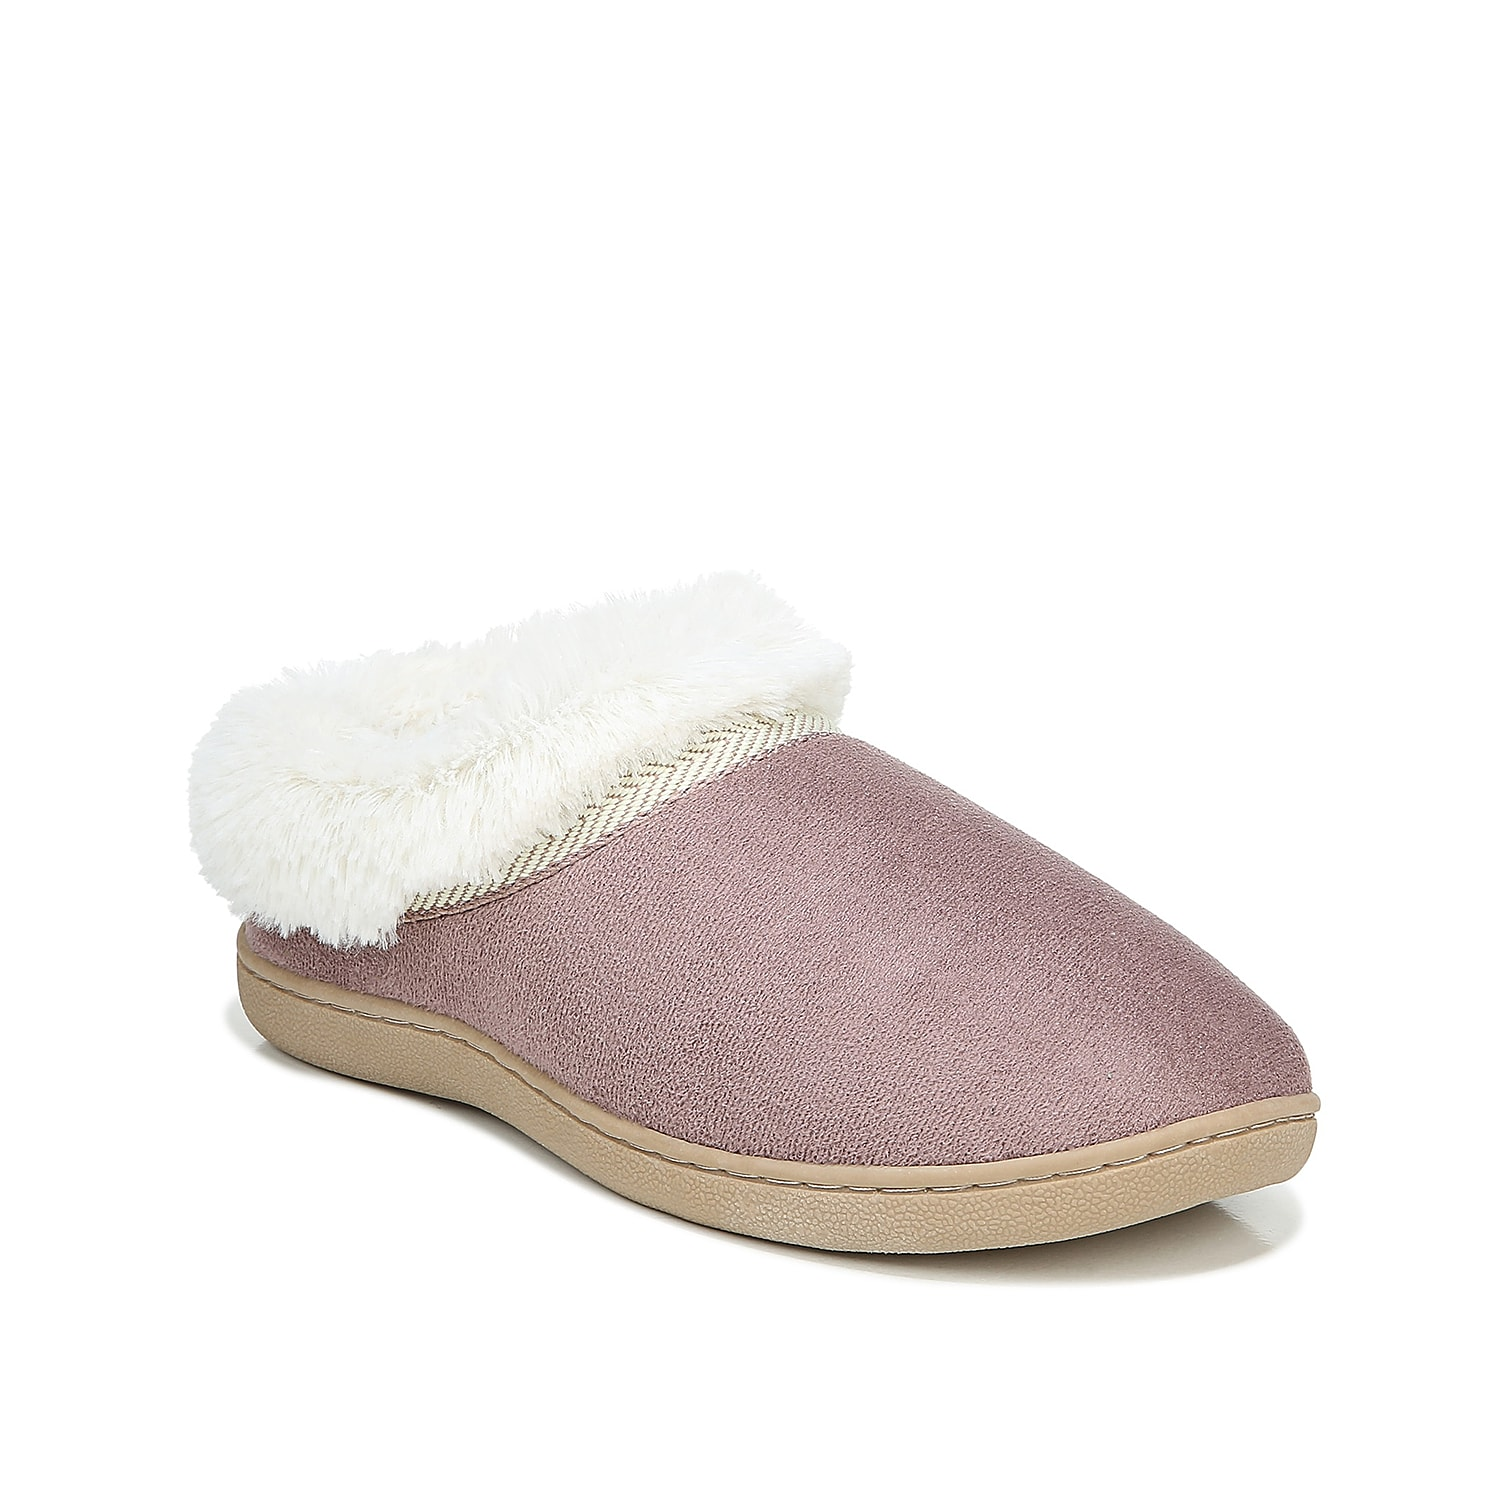 So comfortable, you won\\\'t want to take them off! Dr. Scholl\\\'s brings you the Tatum center seam slipper with a memory foam footbed for ultimate cushioning.